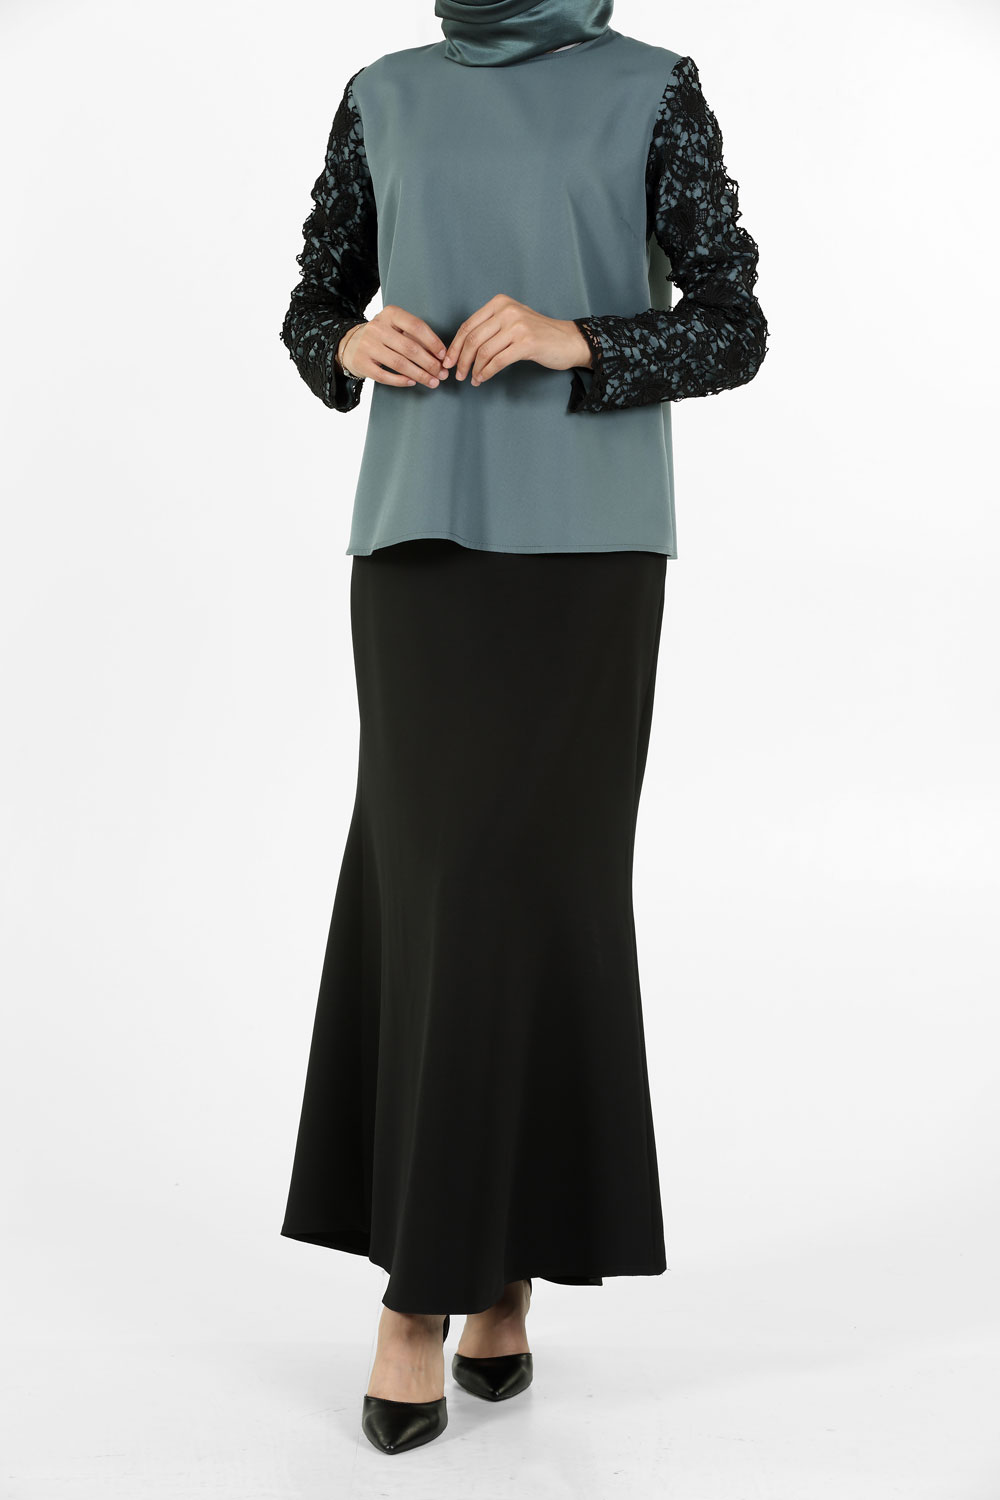 HIJAB SUIT WITH SKIRT